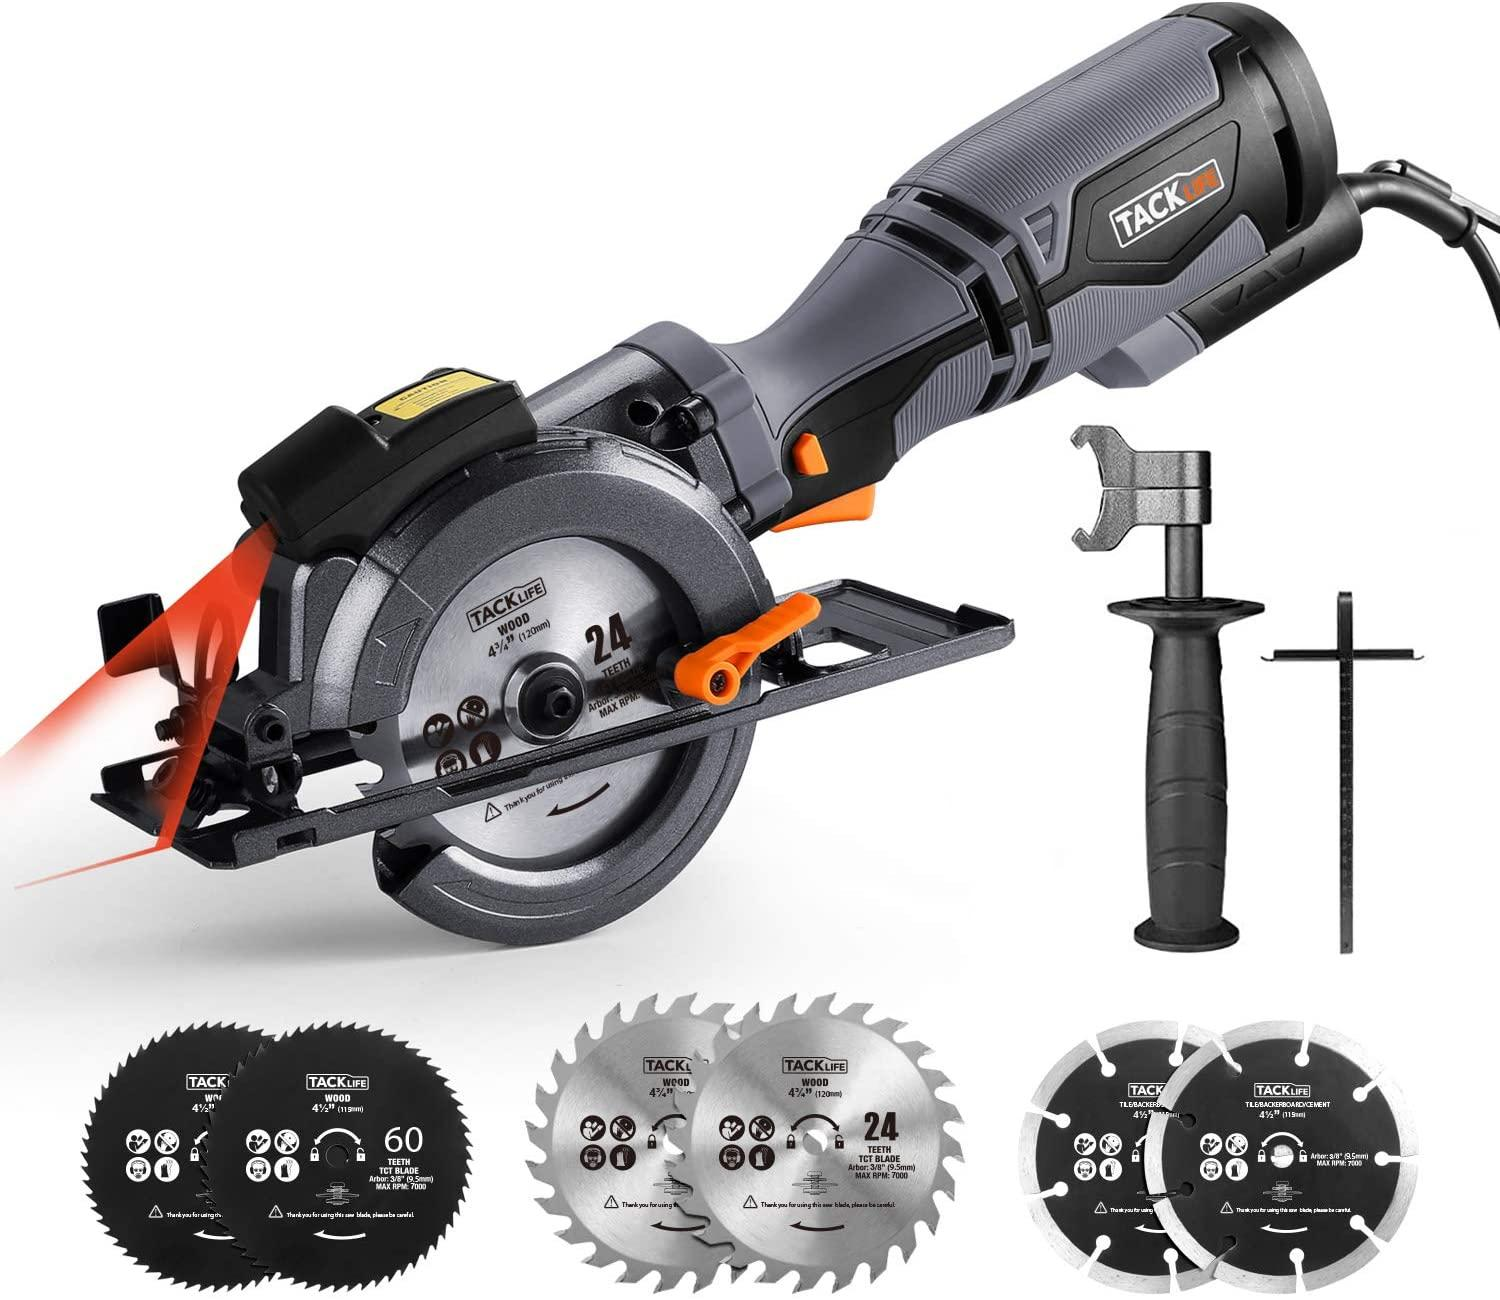 Tacklife Circular Saw with Metal Handle for $55.97 Shipped